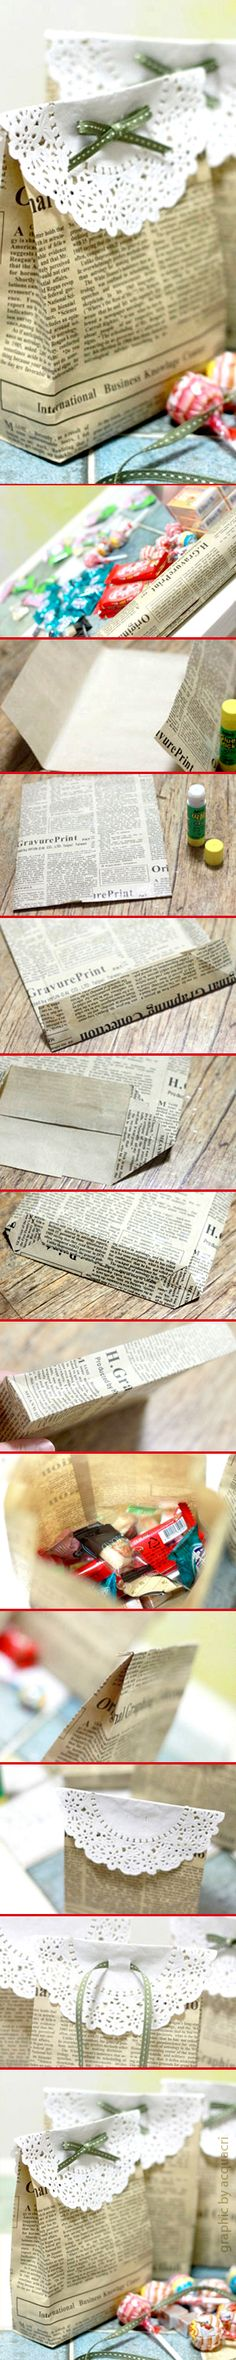 Come fare un sacchetto per regali o dolci dal giornale | How to make a gift bag from newspaper | #DIY #howtomake #ricycling #quickidea #faidate #riciclocreativo #ideeveloci #tutorial